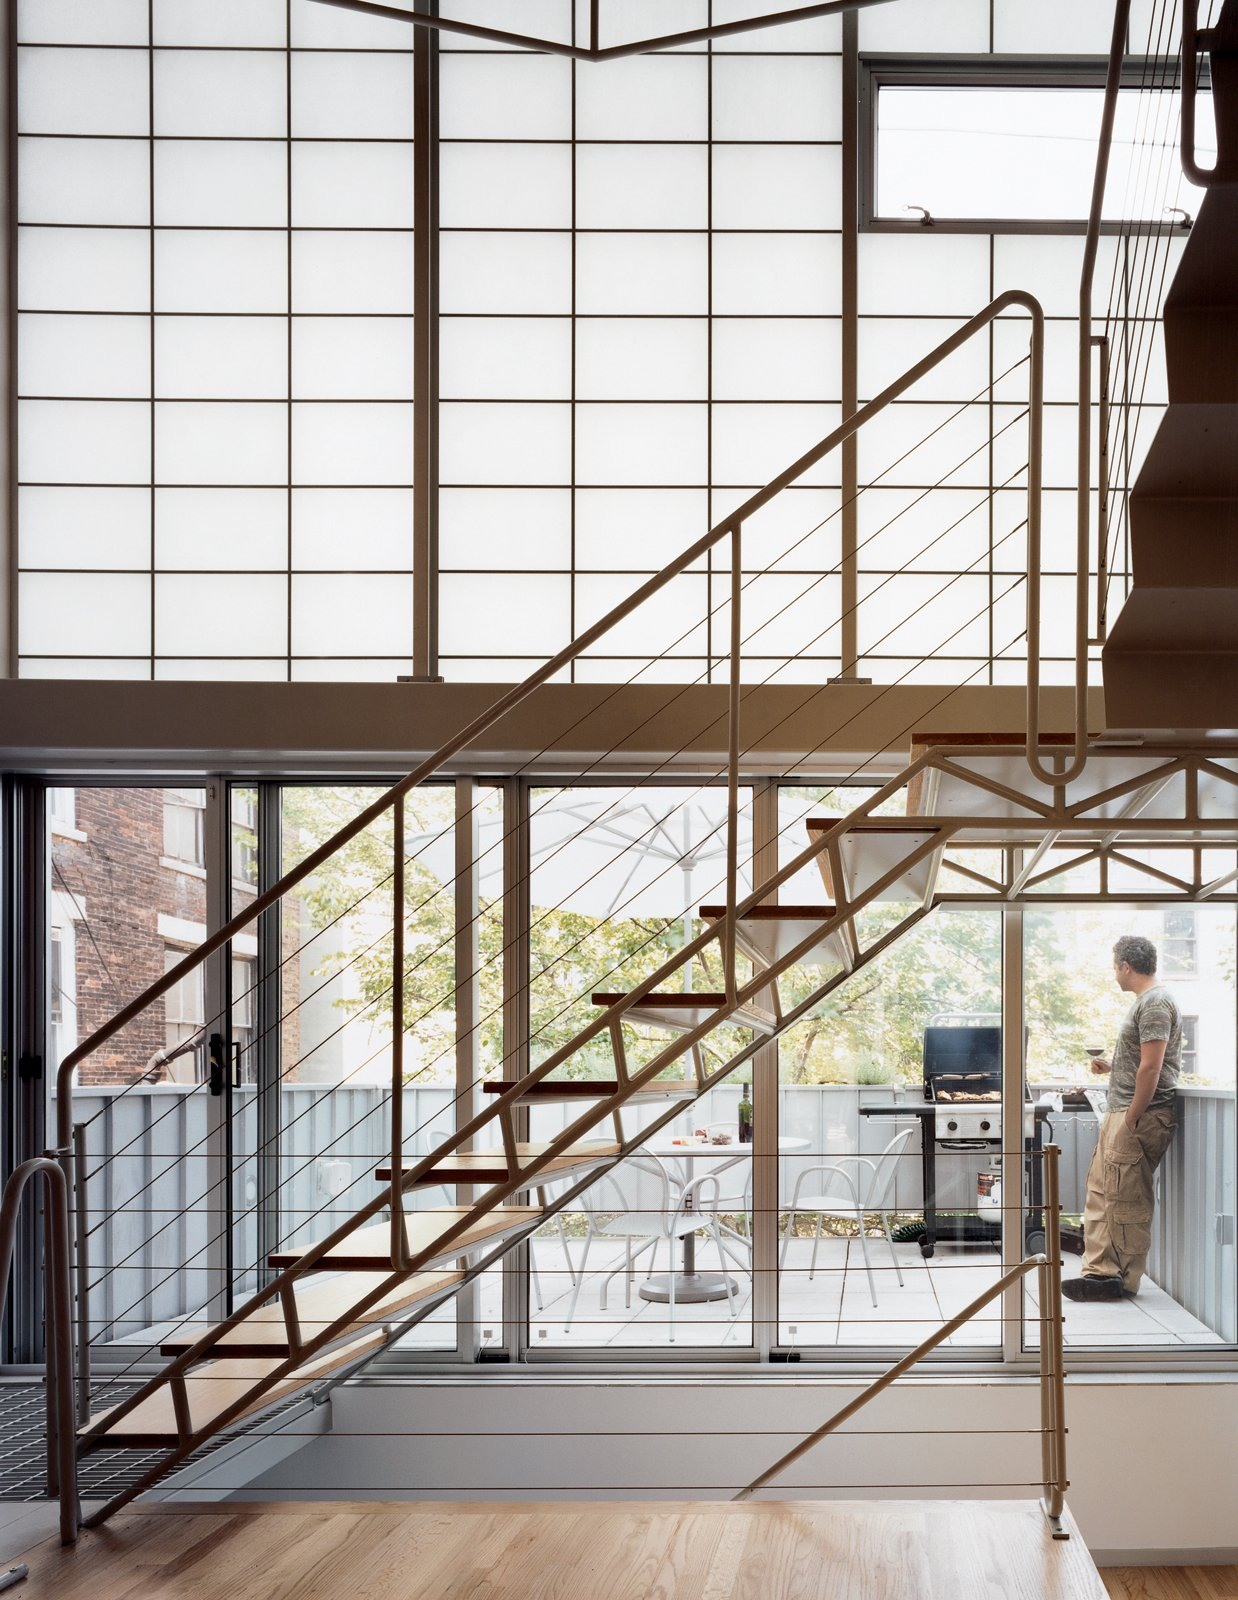 Seemingly a single, seamless unit, the stair is composed of two elements—treads and mezzanine—and held in place by two distinct strategies: The stairs are welded to, and cantilever out from, a series of steel tubes concealed in the walls; the mezzanine   is attached on one side to a steel beam, and hung at two other points from rods attached to the roof structure.  190+ Best Modern Staircase Ideas by Dwell from Harlem Renaissance